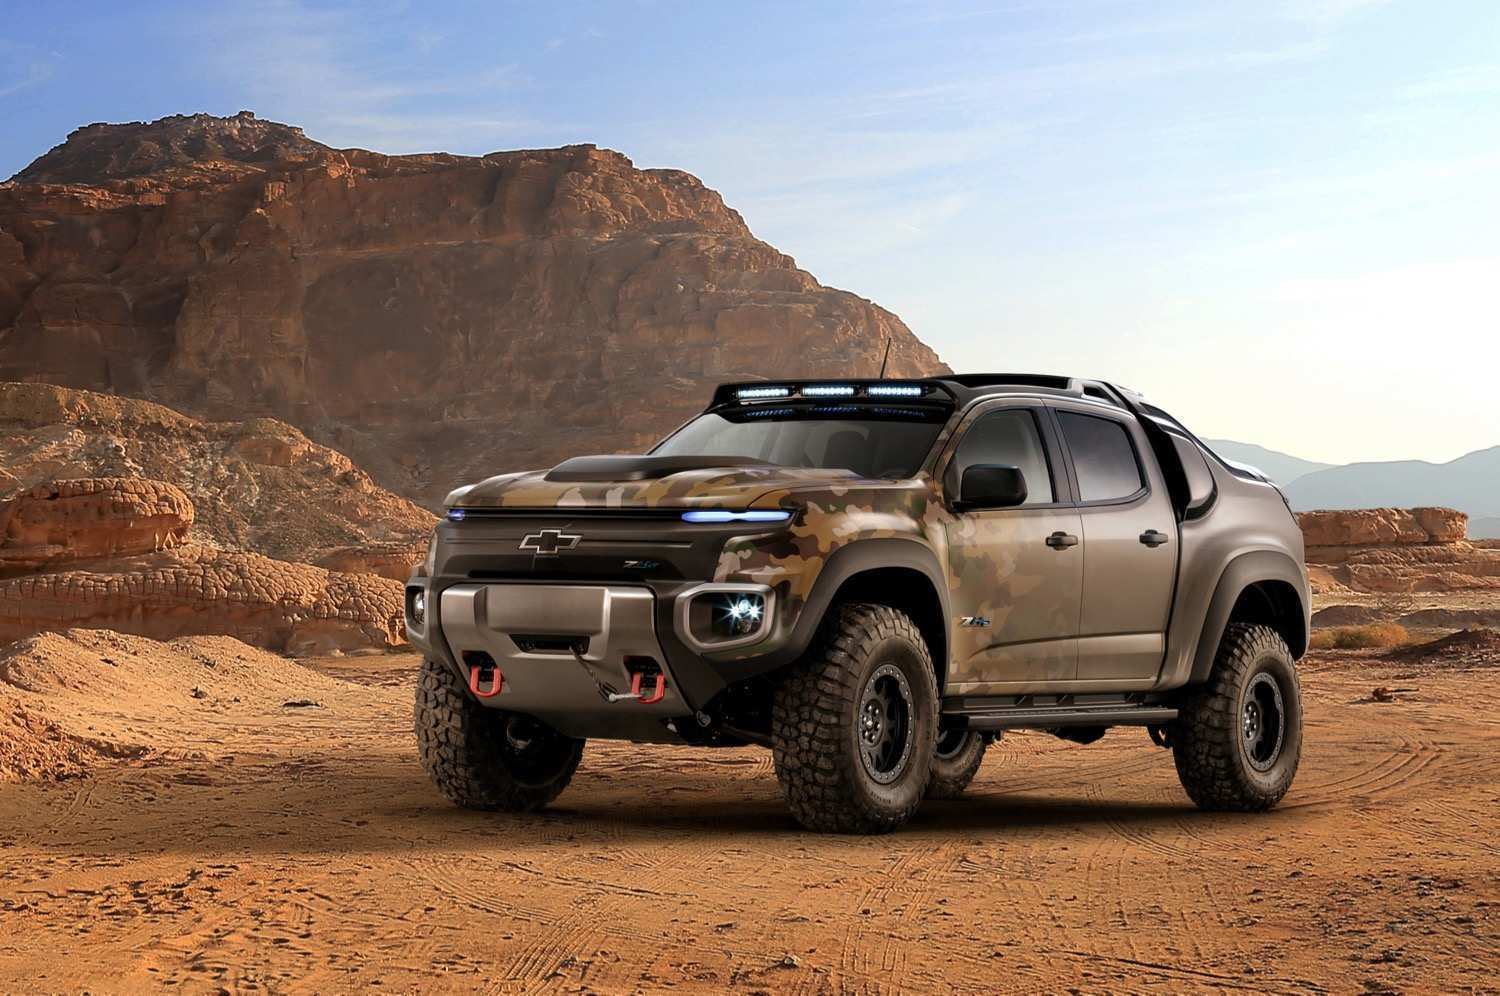 47 Great 2020 Chevy Colorado Going Launched Soon Ratings with 2020 Chevy Colorado Going Launched Soon